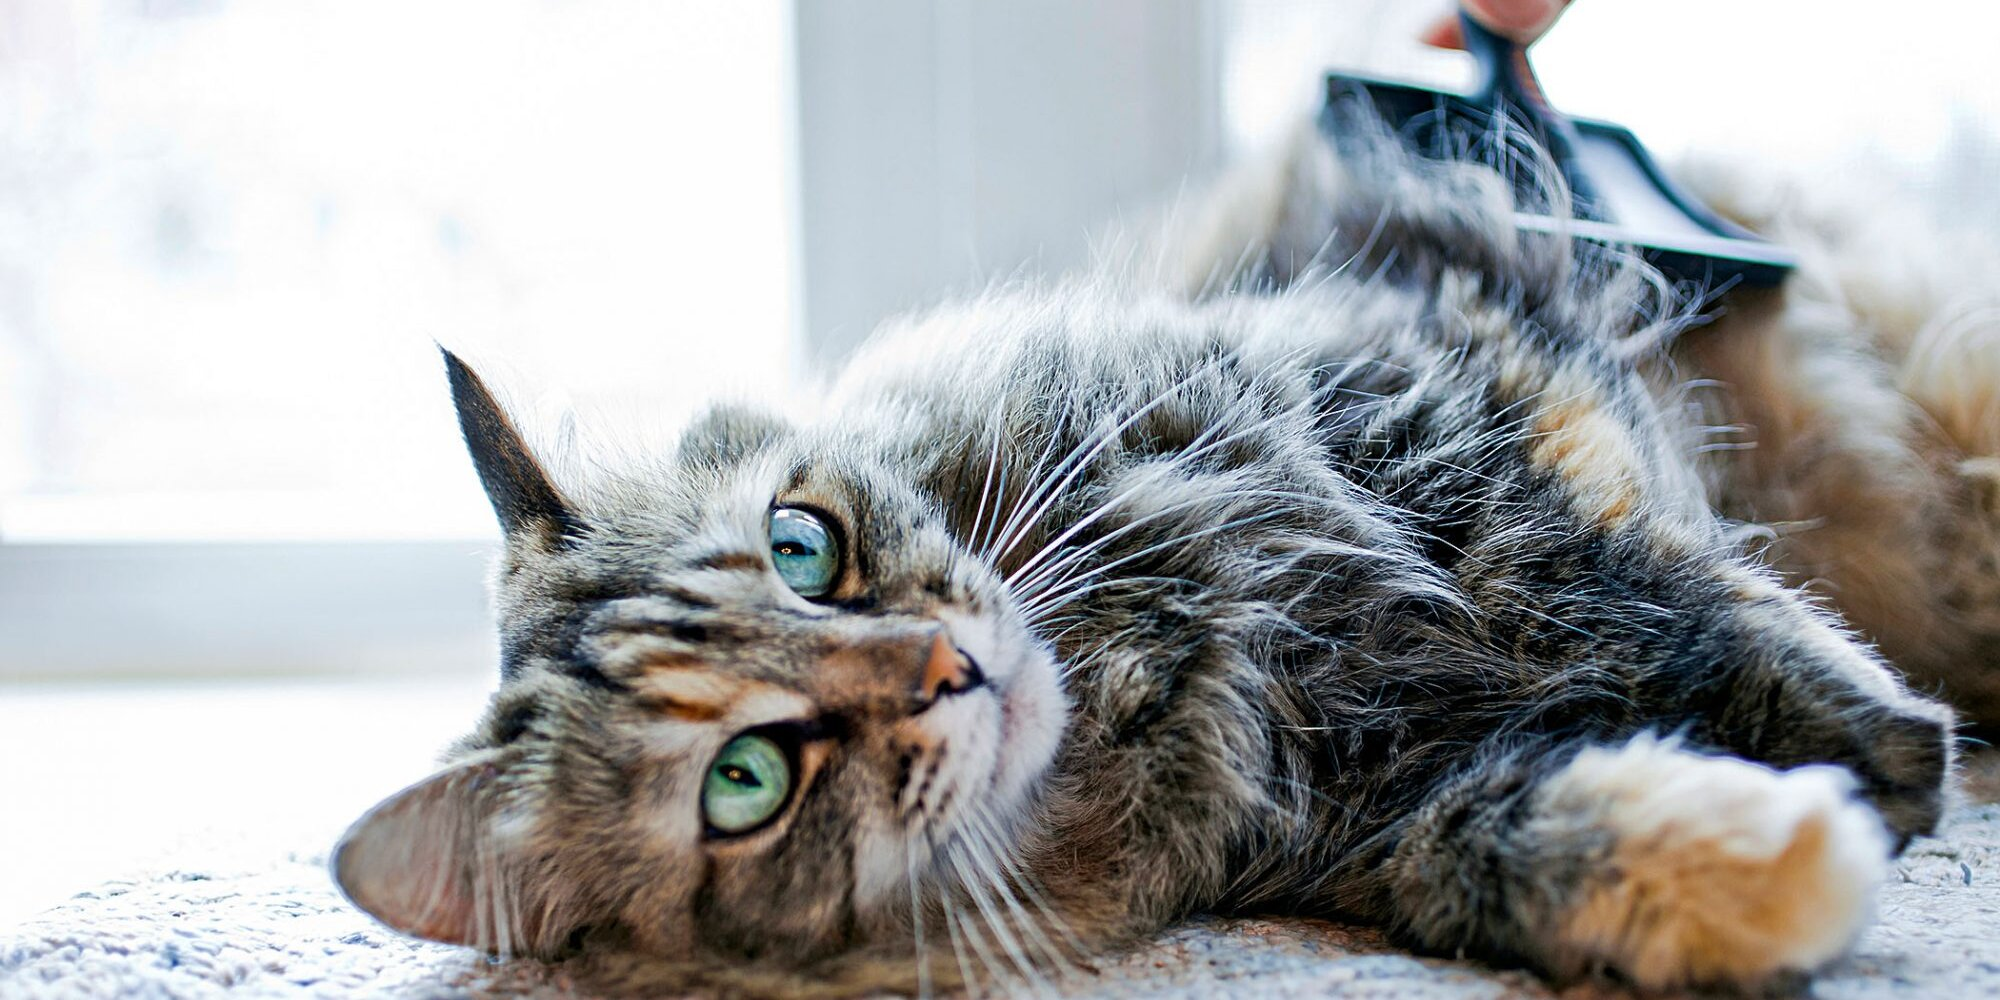 How To Care For Your Cat Expert Tips From A Vet Covering Food And Water Needs To Vet Visits Daily Paws